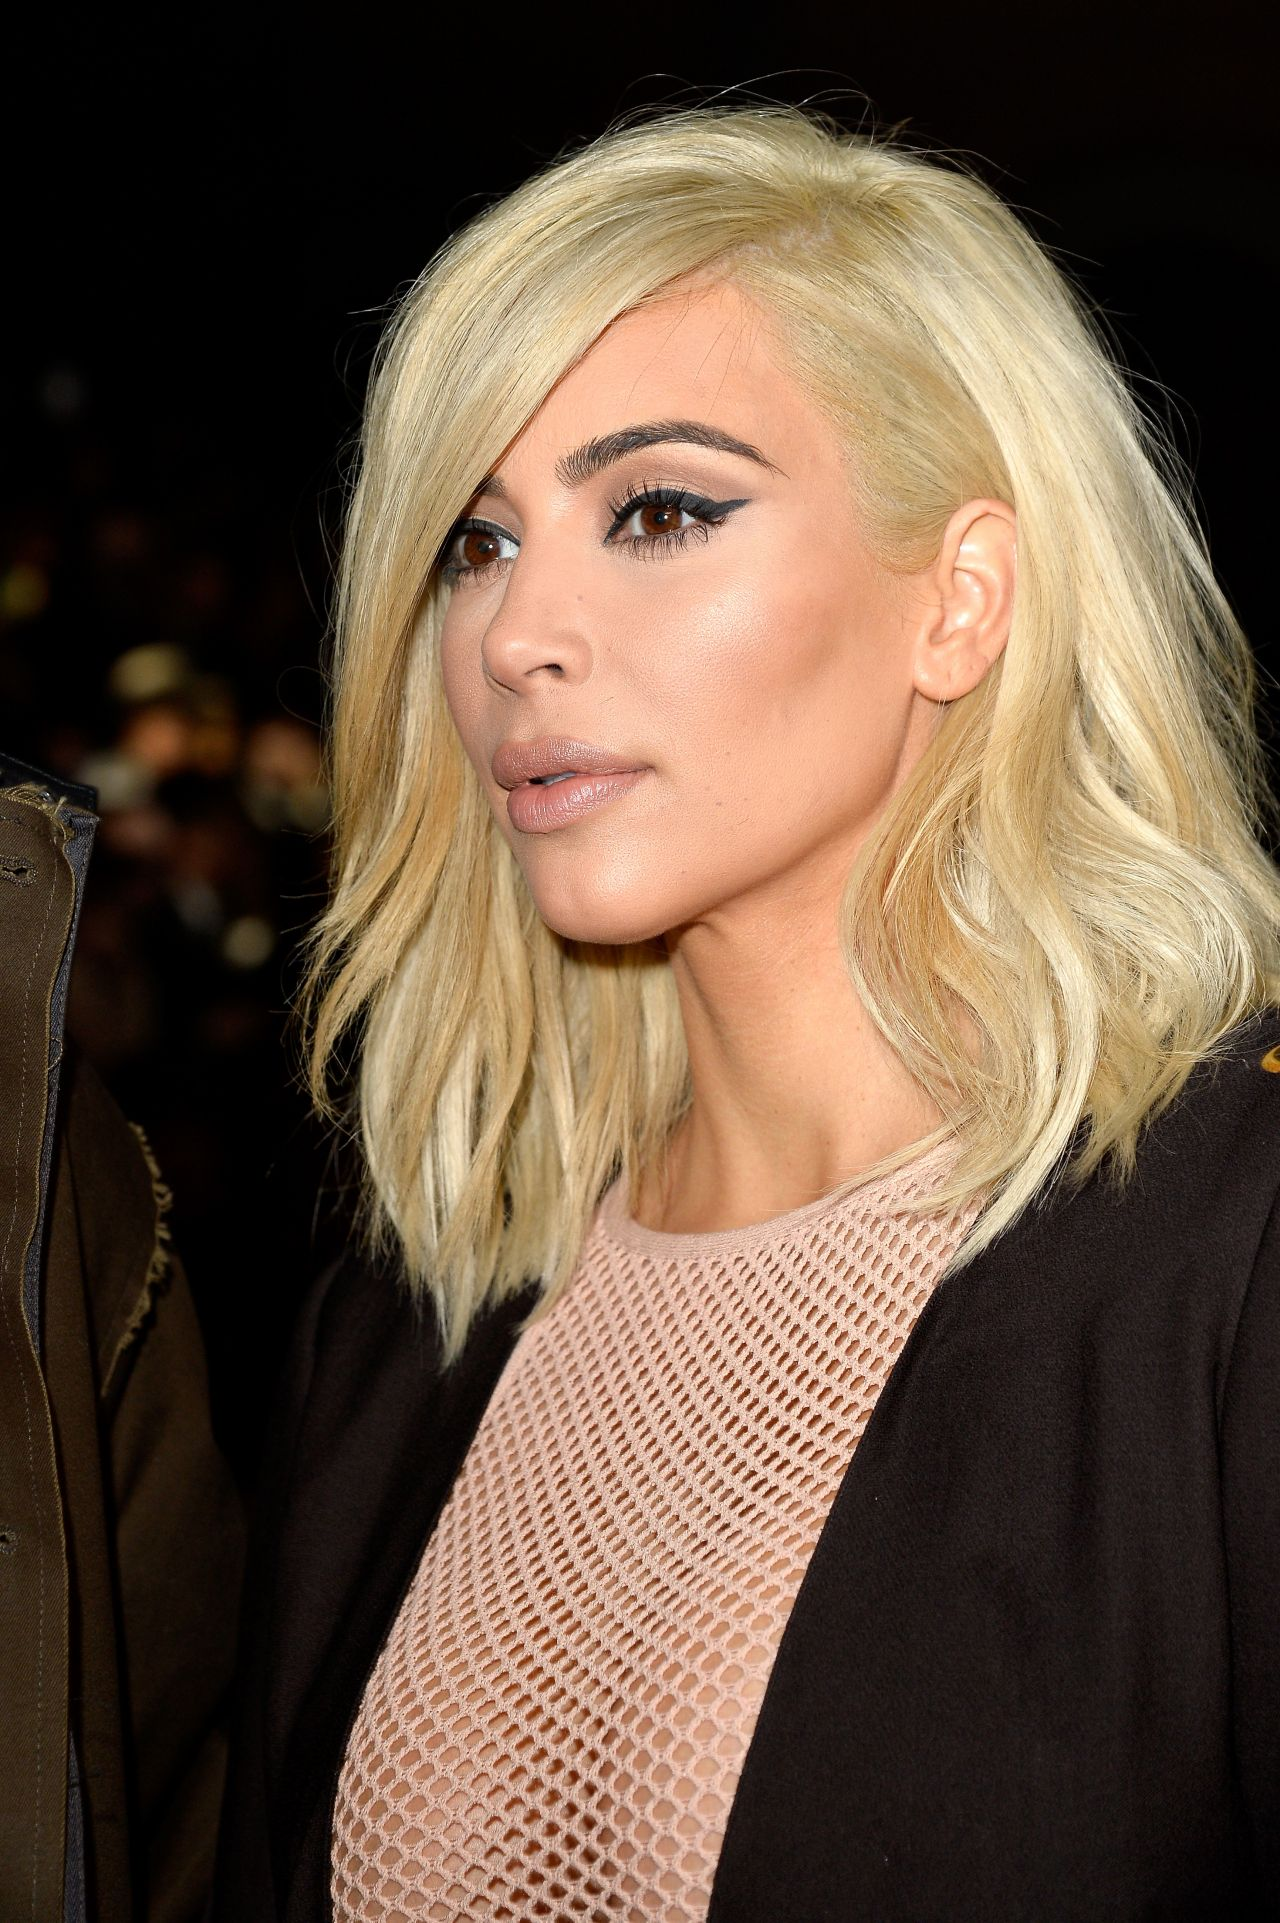 Kim Kardashian Is Blonde Now – Lanvin Fashion Show in Paris, March ... Kim Kardashian